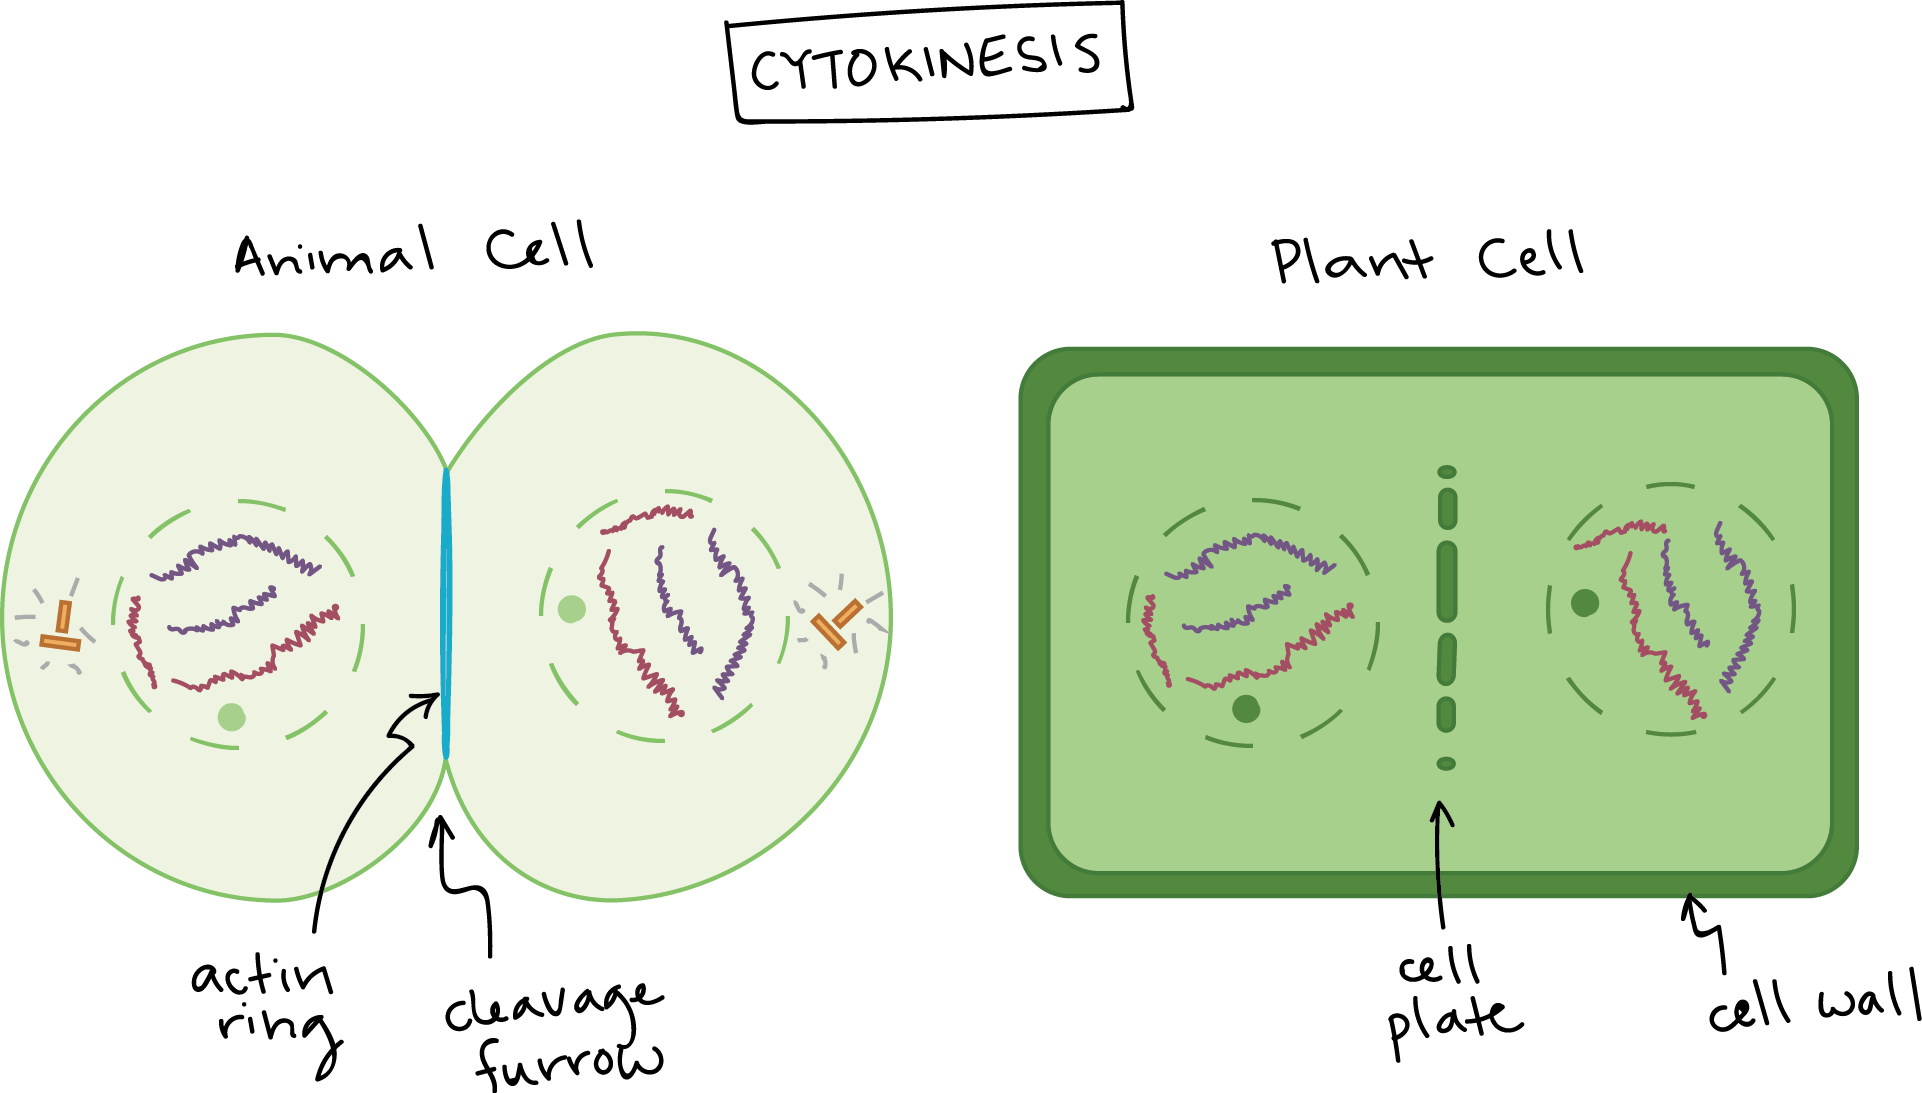 Bacterial Binary Fission The Cell Cycle And Mitosis Article Diagram Labeled Similarities Between Prokaryotic Eukaryotic Khan Academy